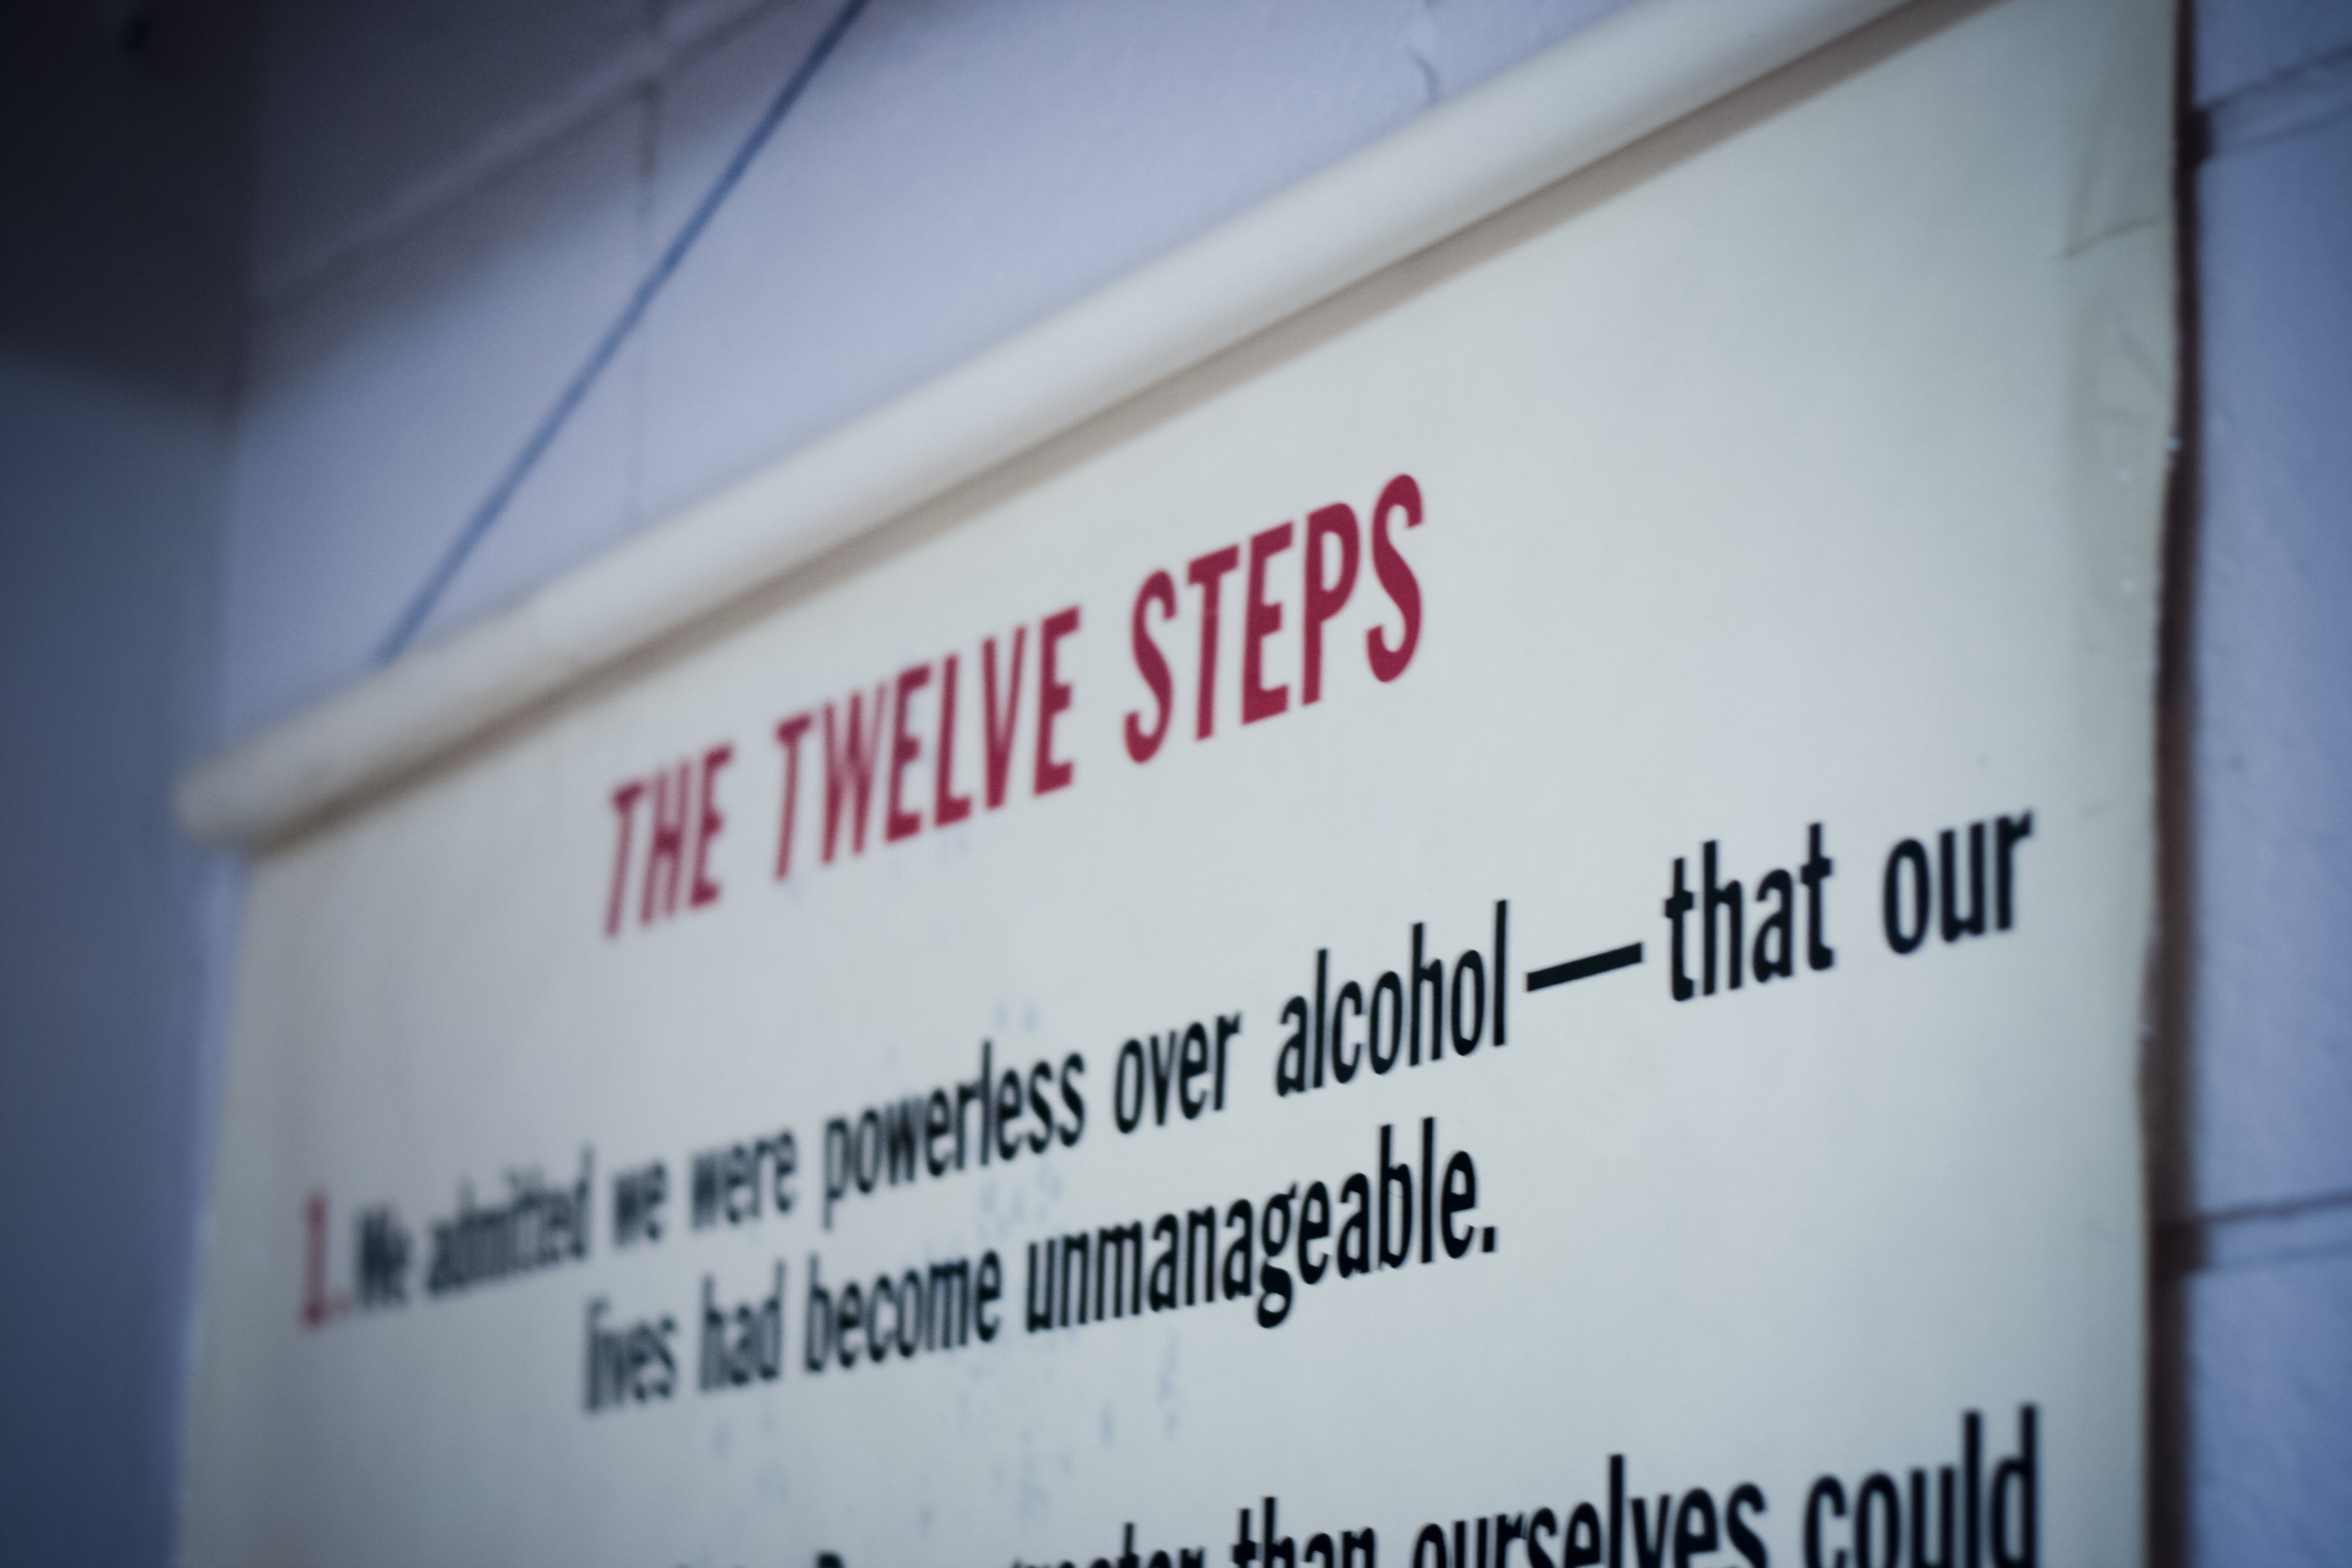 Step one of the Twelve Steps is pictured here.